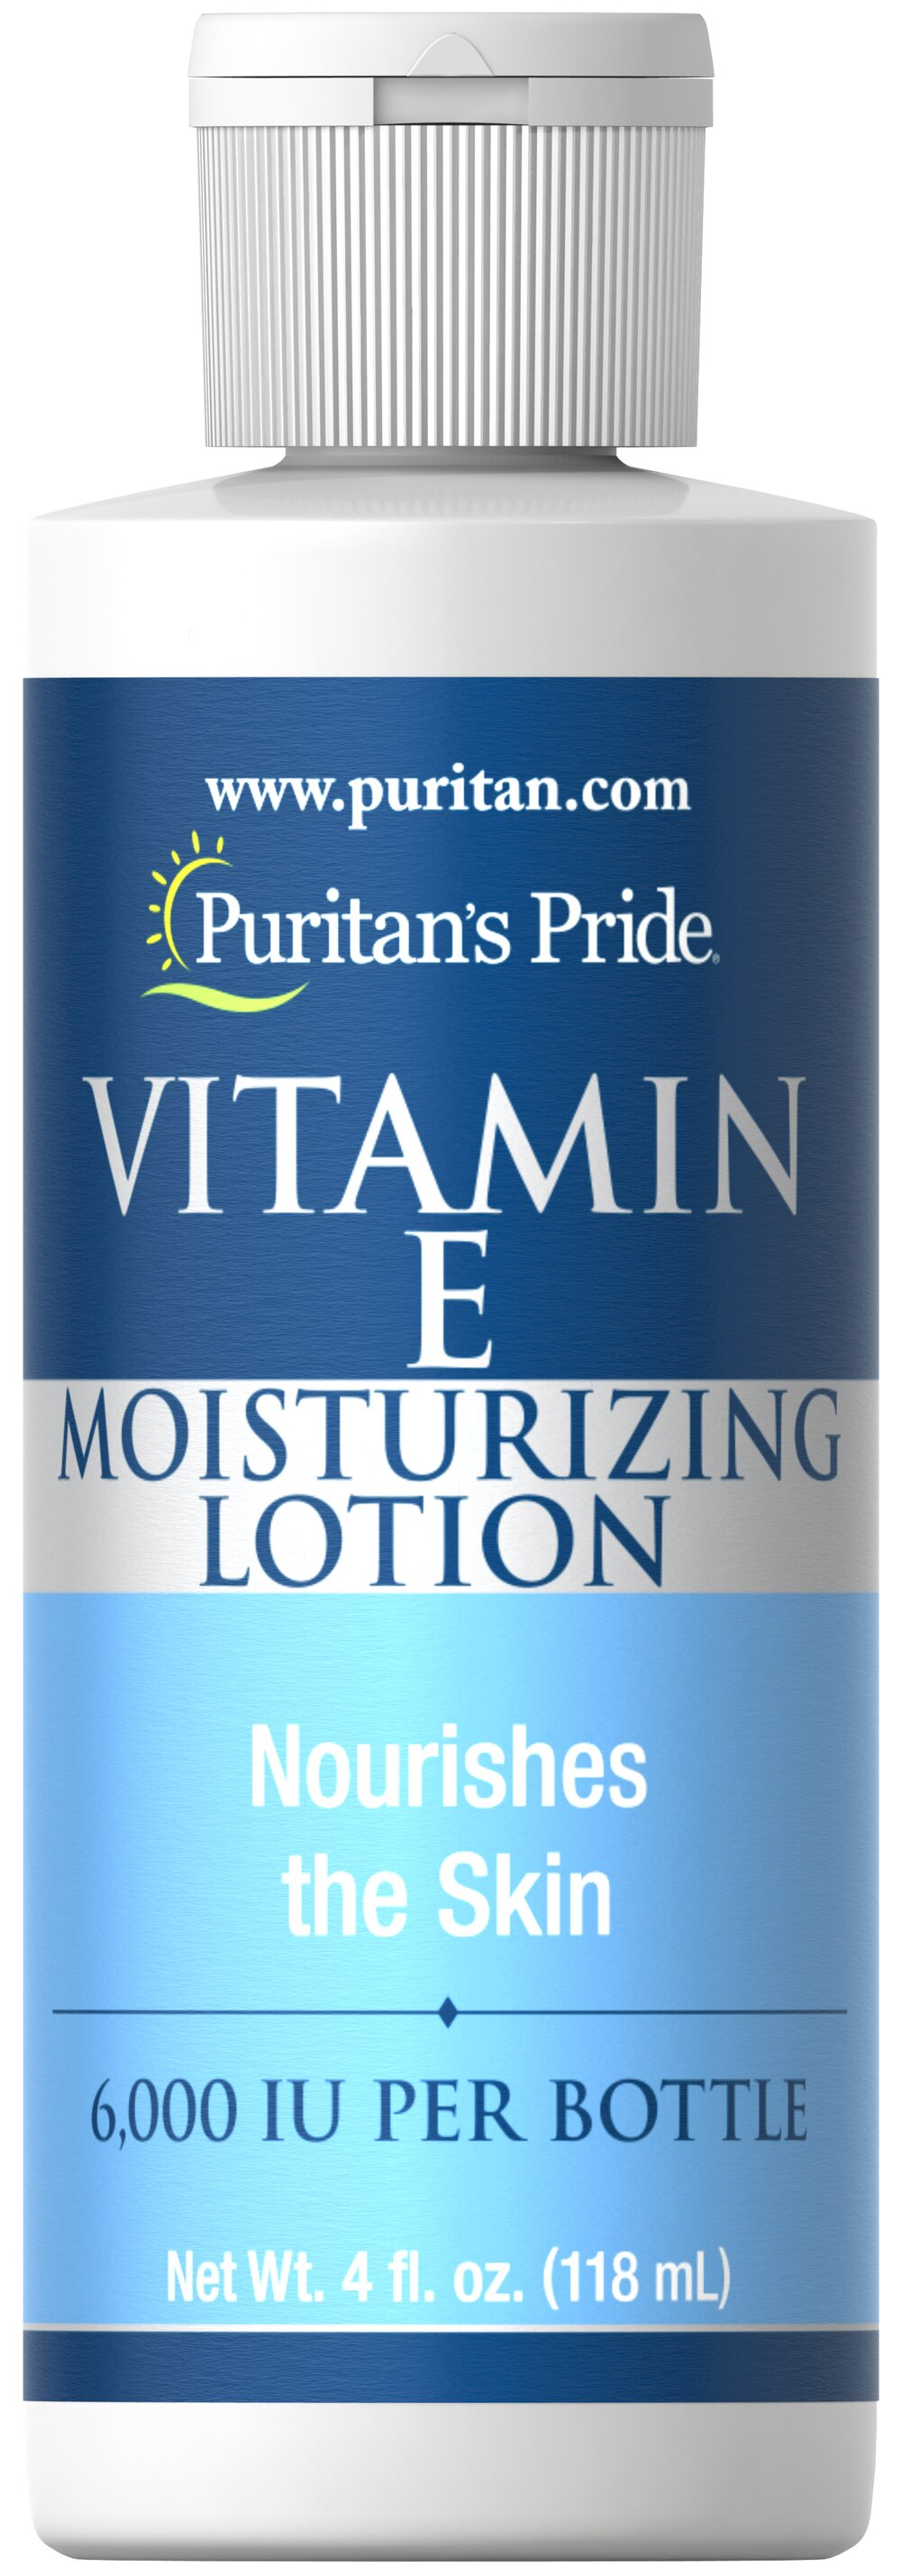 Vitamin E Moisturizing Lotion 6,000 IU <p>The All-Over Body Moisturizer</p>  <p>Now give your skin the natural benefits of Vitamin E Lotion. This rich lotion gives you 6,000 IU of Vitamin E per bottle with the added moisturizing benefits of natural Wheat Germ Oil. The protective emollient action maintains the natural moisture balance of the skin leaving even the driest skin smooth all over.</p> 4 oz Lotion 6000 IU $8.99